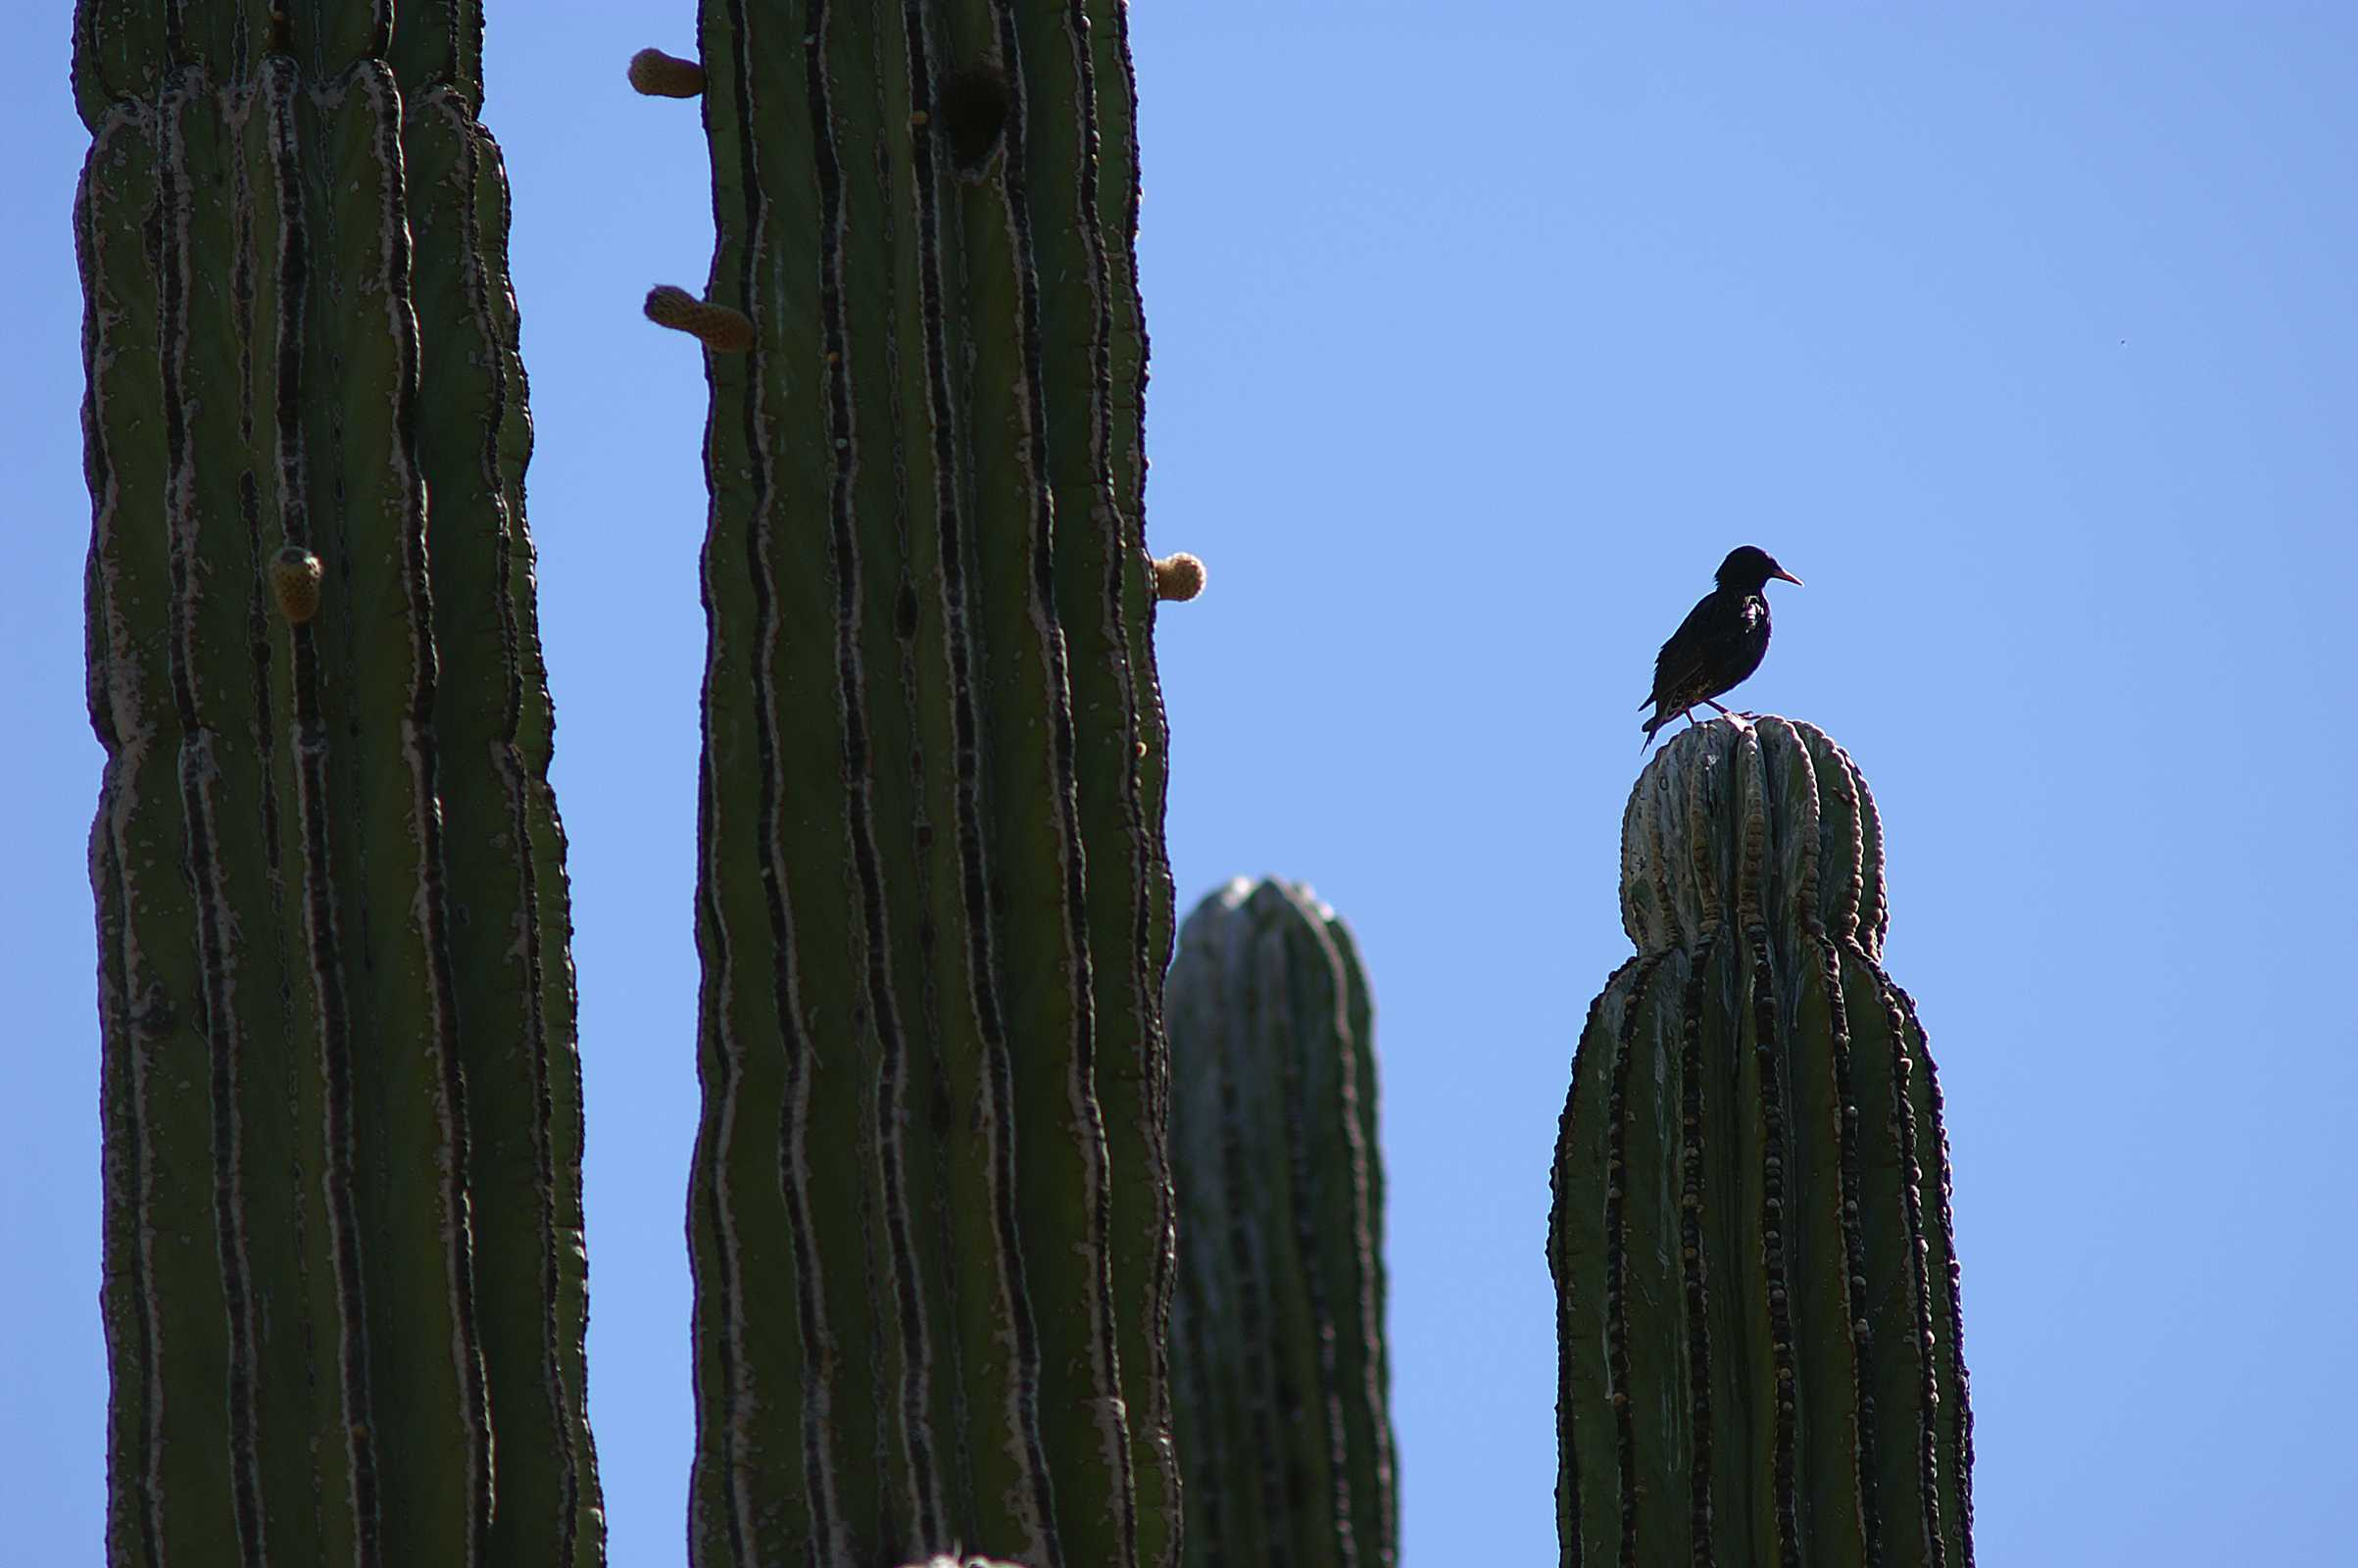 Bird sitting on cactus, Long, Pins, Desert, Sitting, HQ Photo